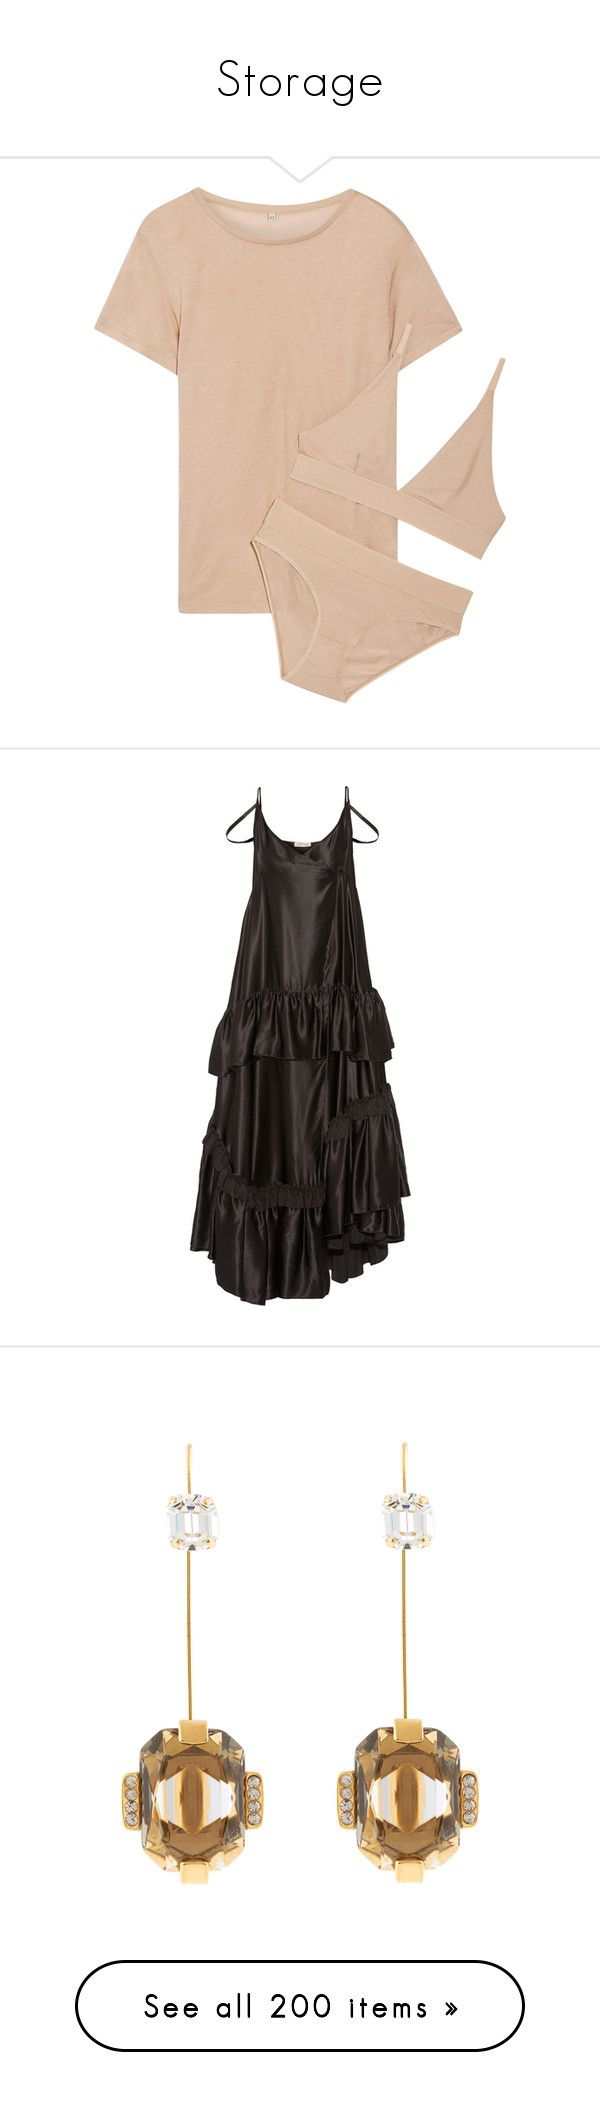 """""""Storage"""" by amberelb ❤ liked on Polyvore featuring intimates, lingerie, dresses, black, maxi length dresses, ruffle tiered maxi dress, loose dresses, loose fitting dresses, tiered ruffle dress and jewelry"""